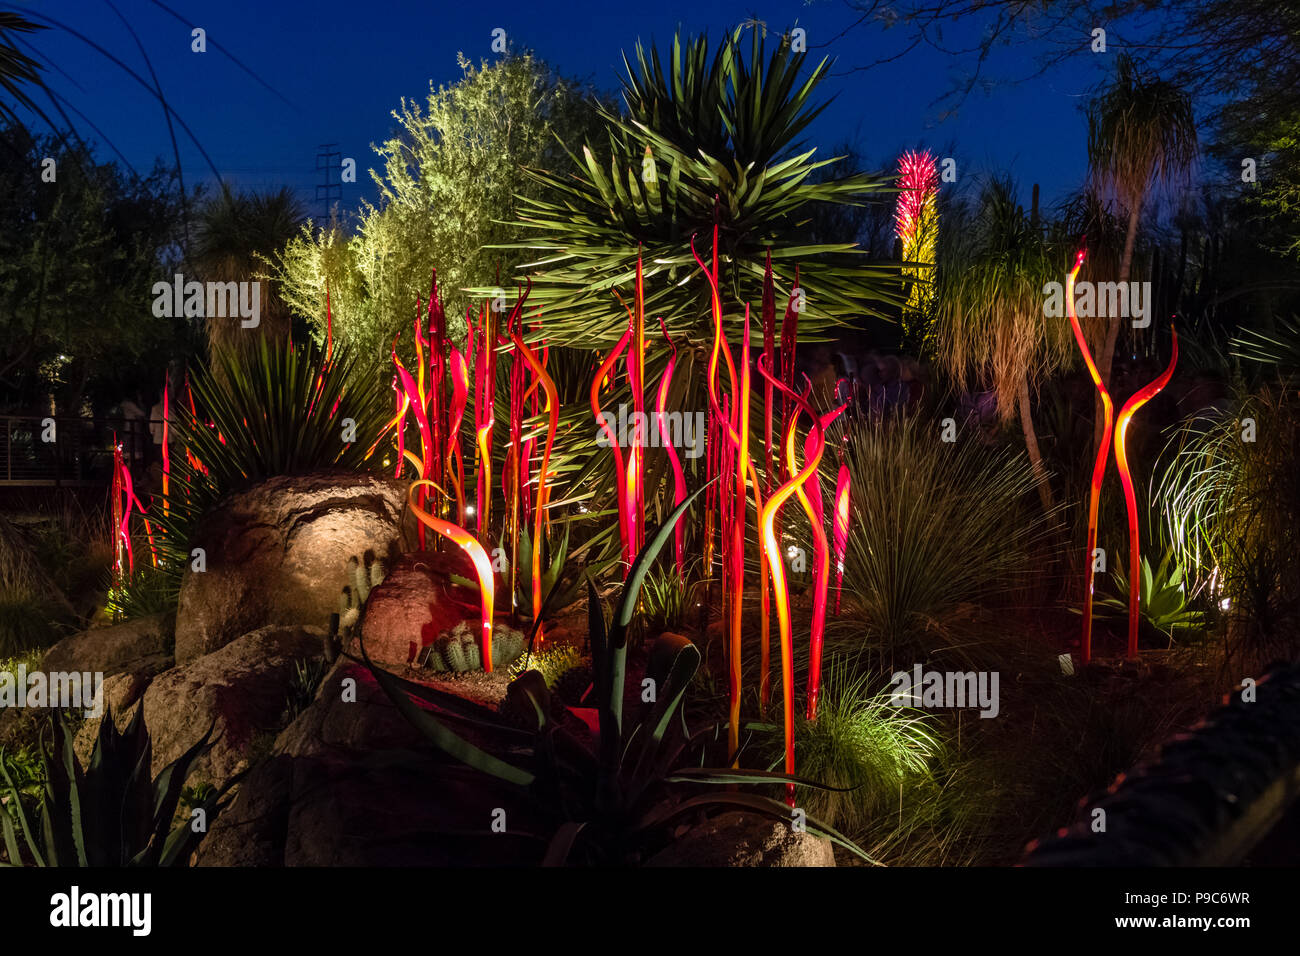 Chihuly Cattails at Desert Botanical Garden at Night Stock Photo ...